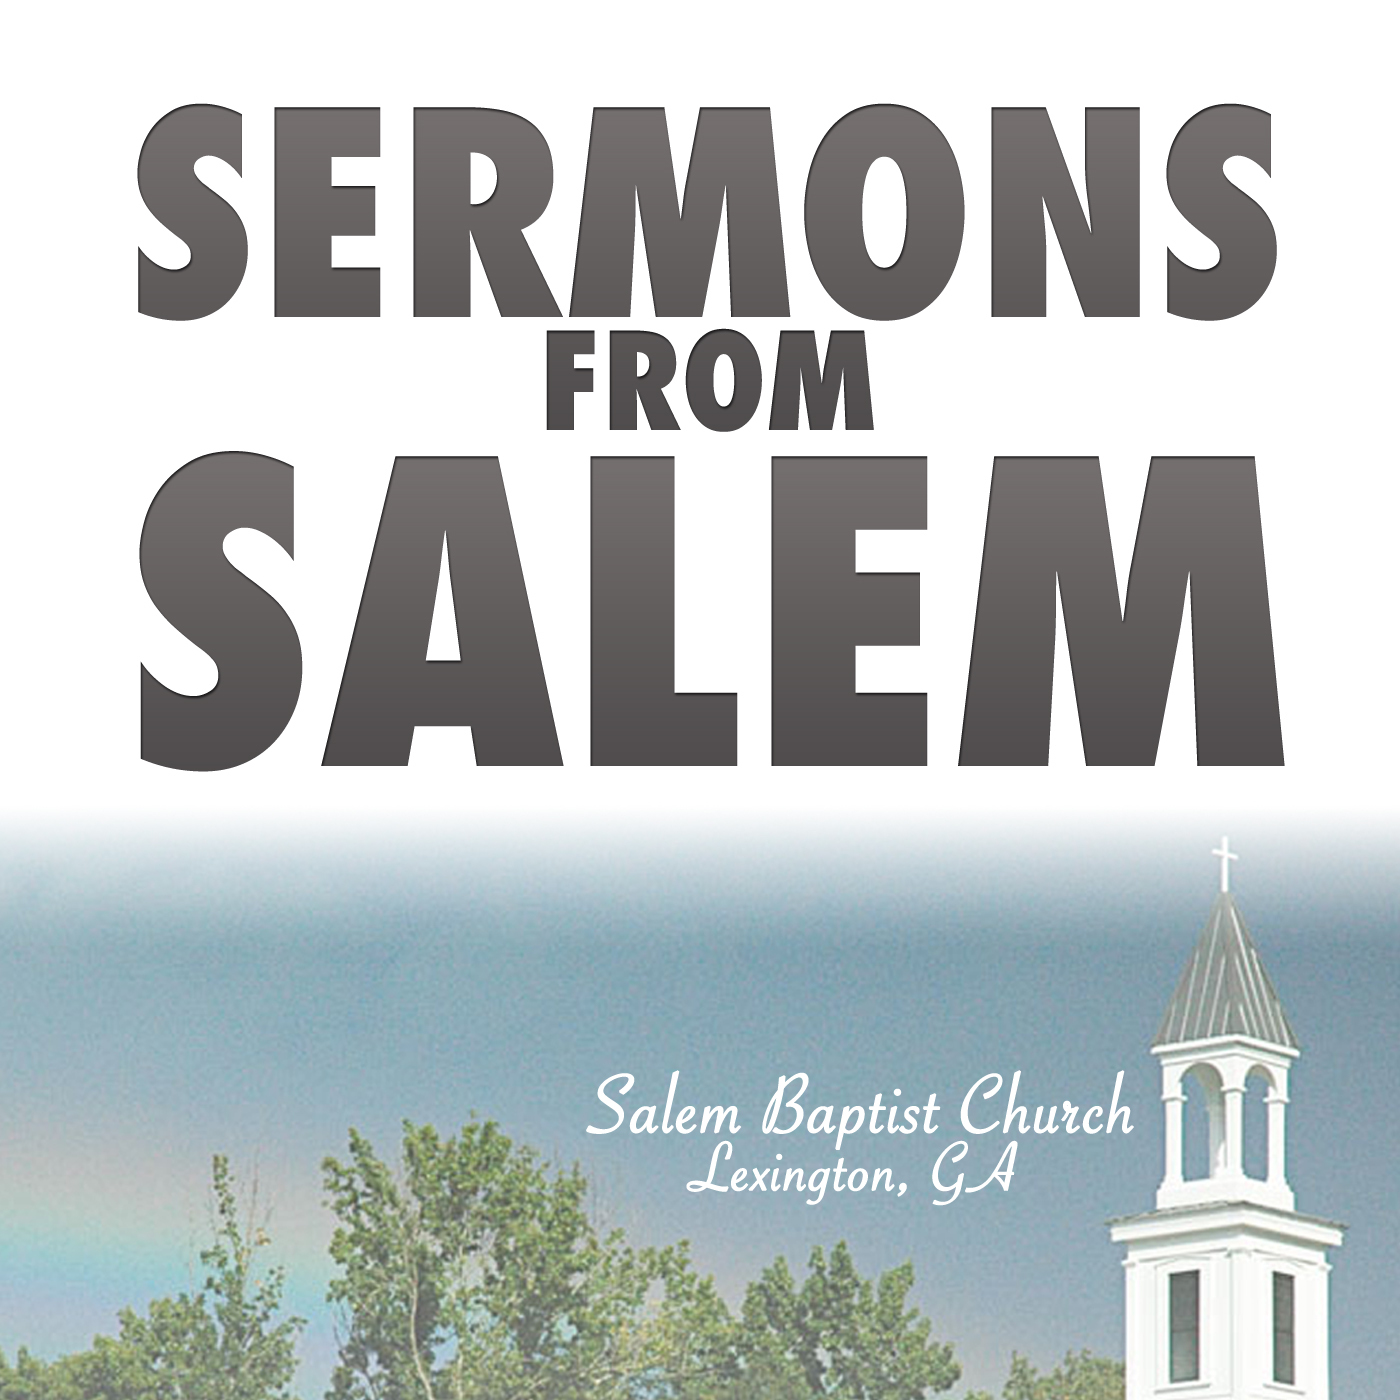 Sermons from Salem